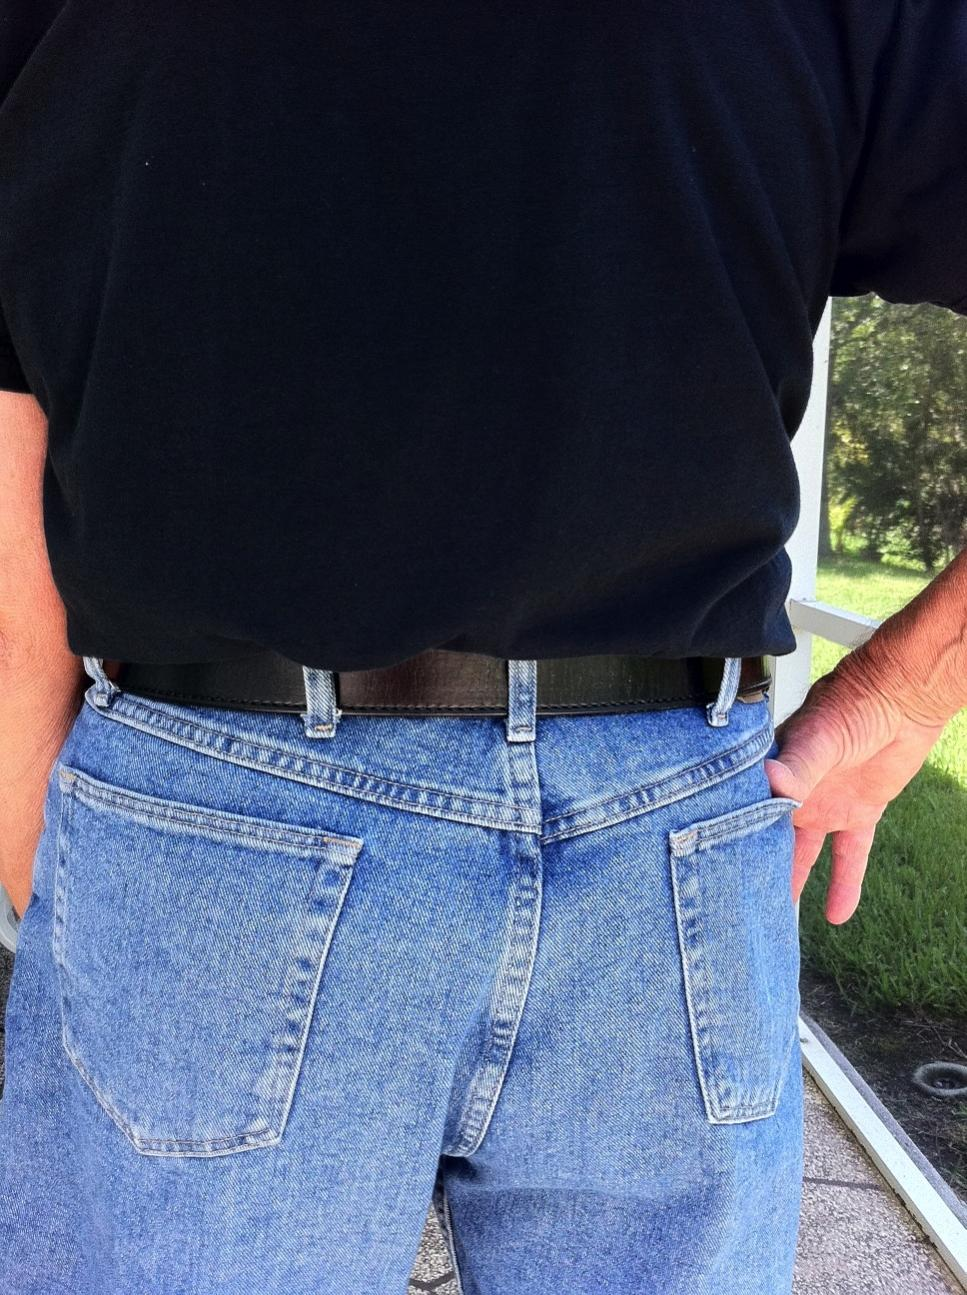 AIWB Holsters that pull grip closer to the body-image.jpg